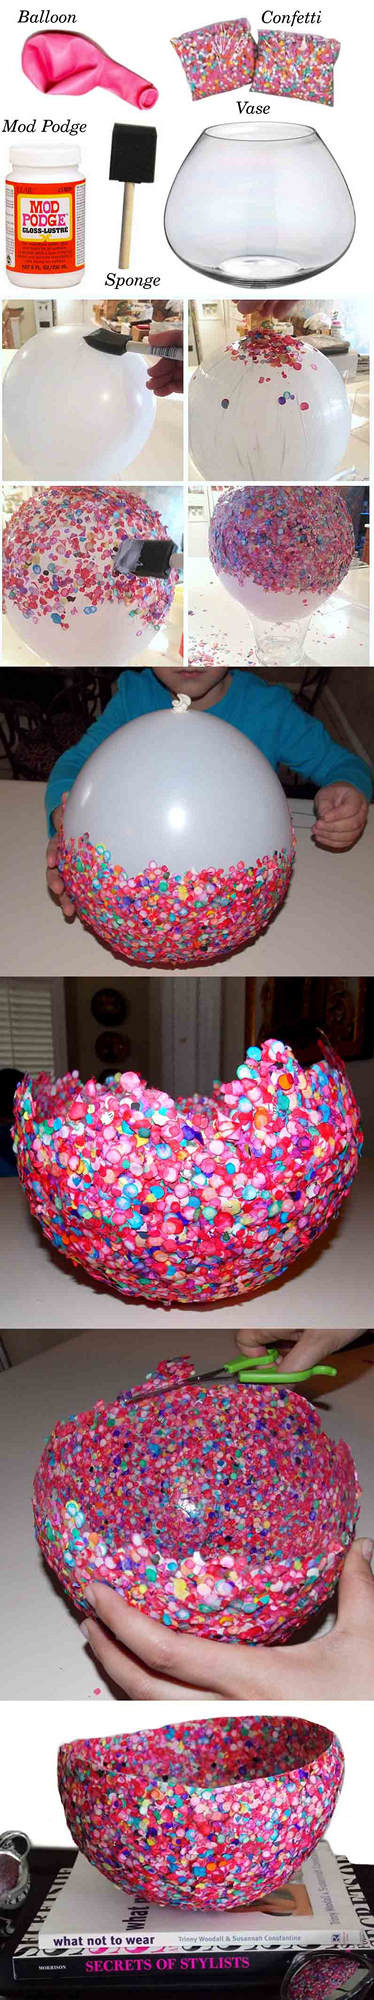 Best ideas about DIY Craft Projects For Adults . Save or Pin 11 Simple DIY Craft Ideas for Adults Snappy Now.